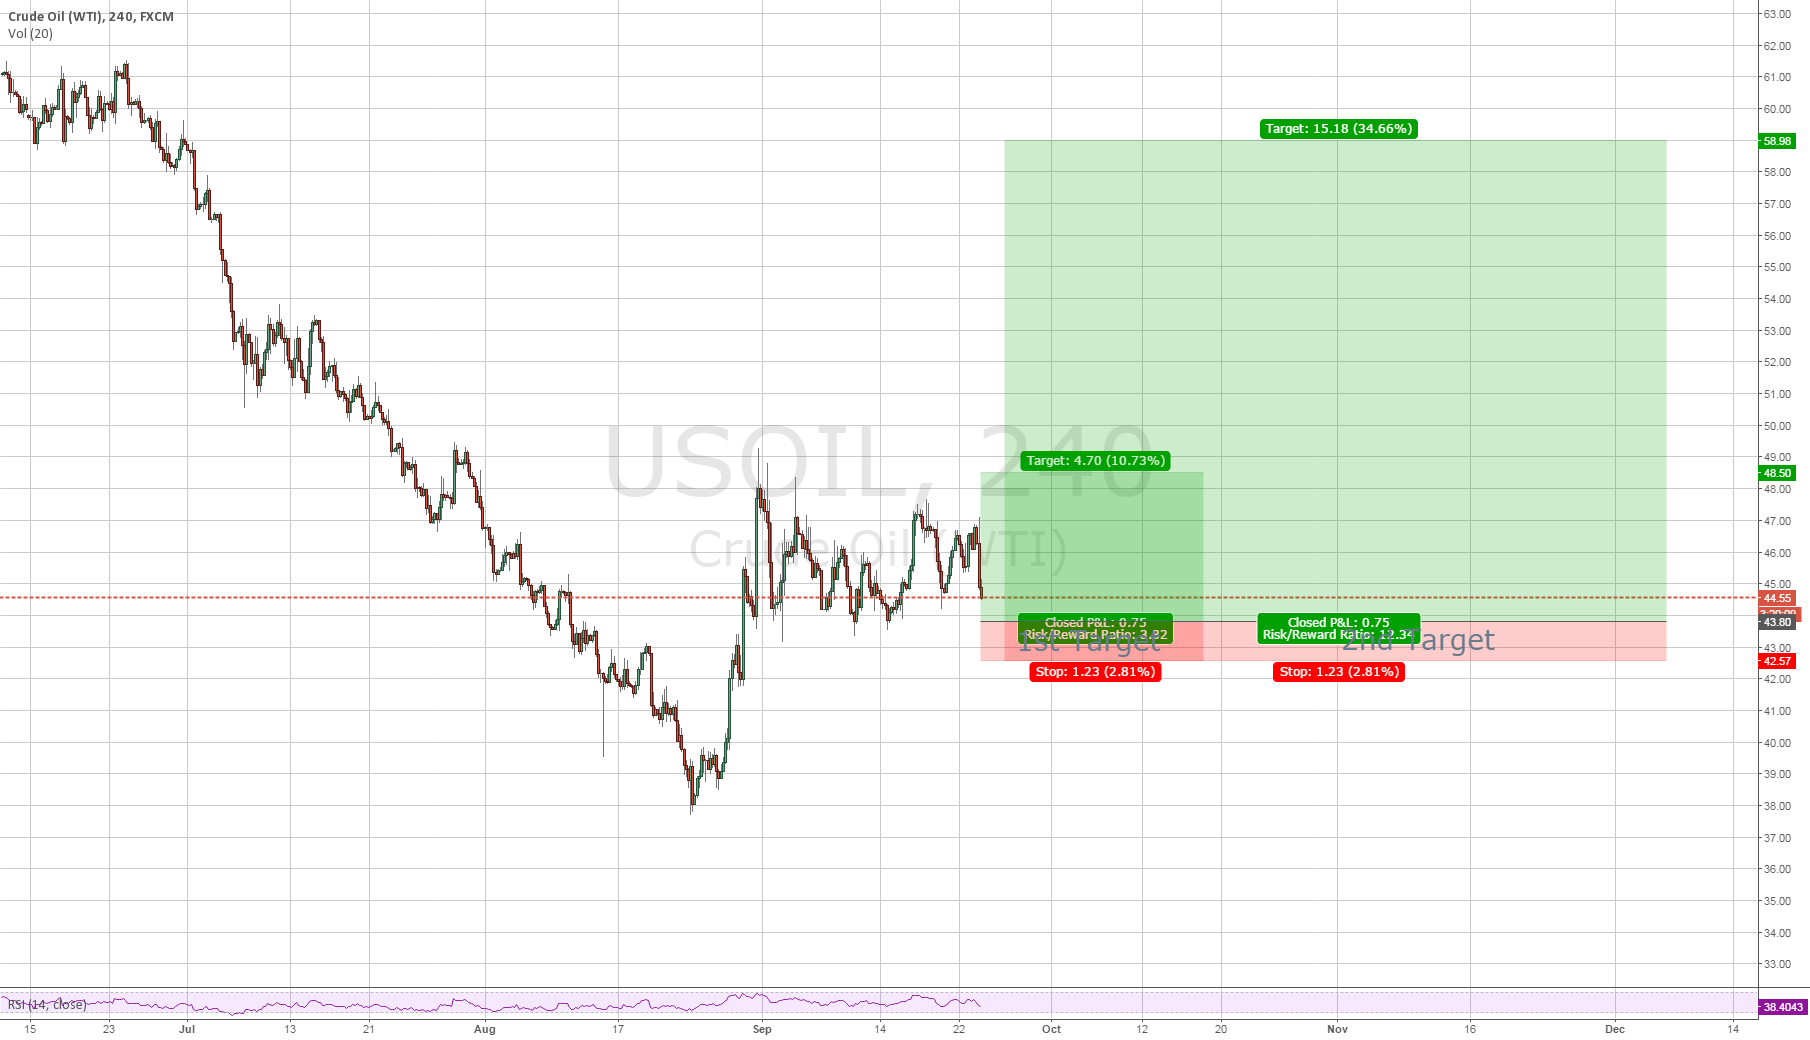 I am going to enter LONG USOIL at around the $43.80 level